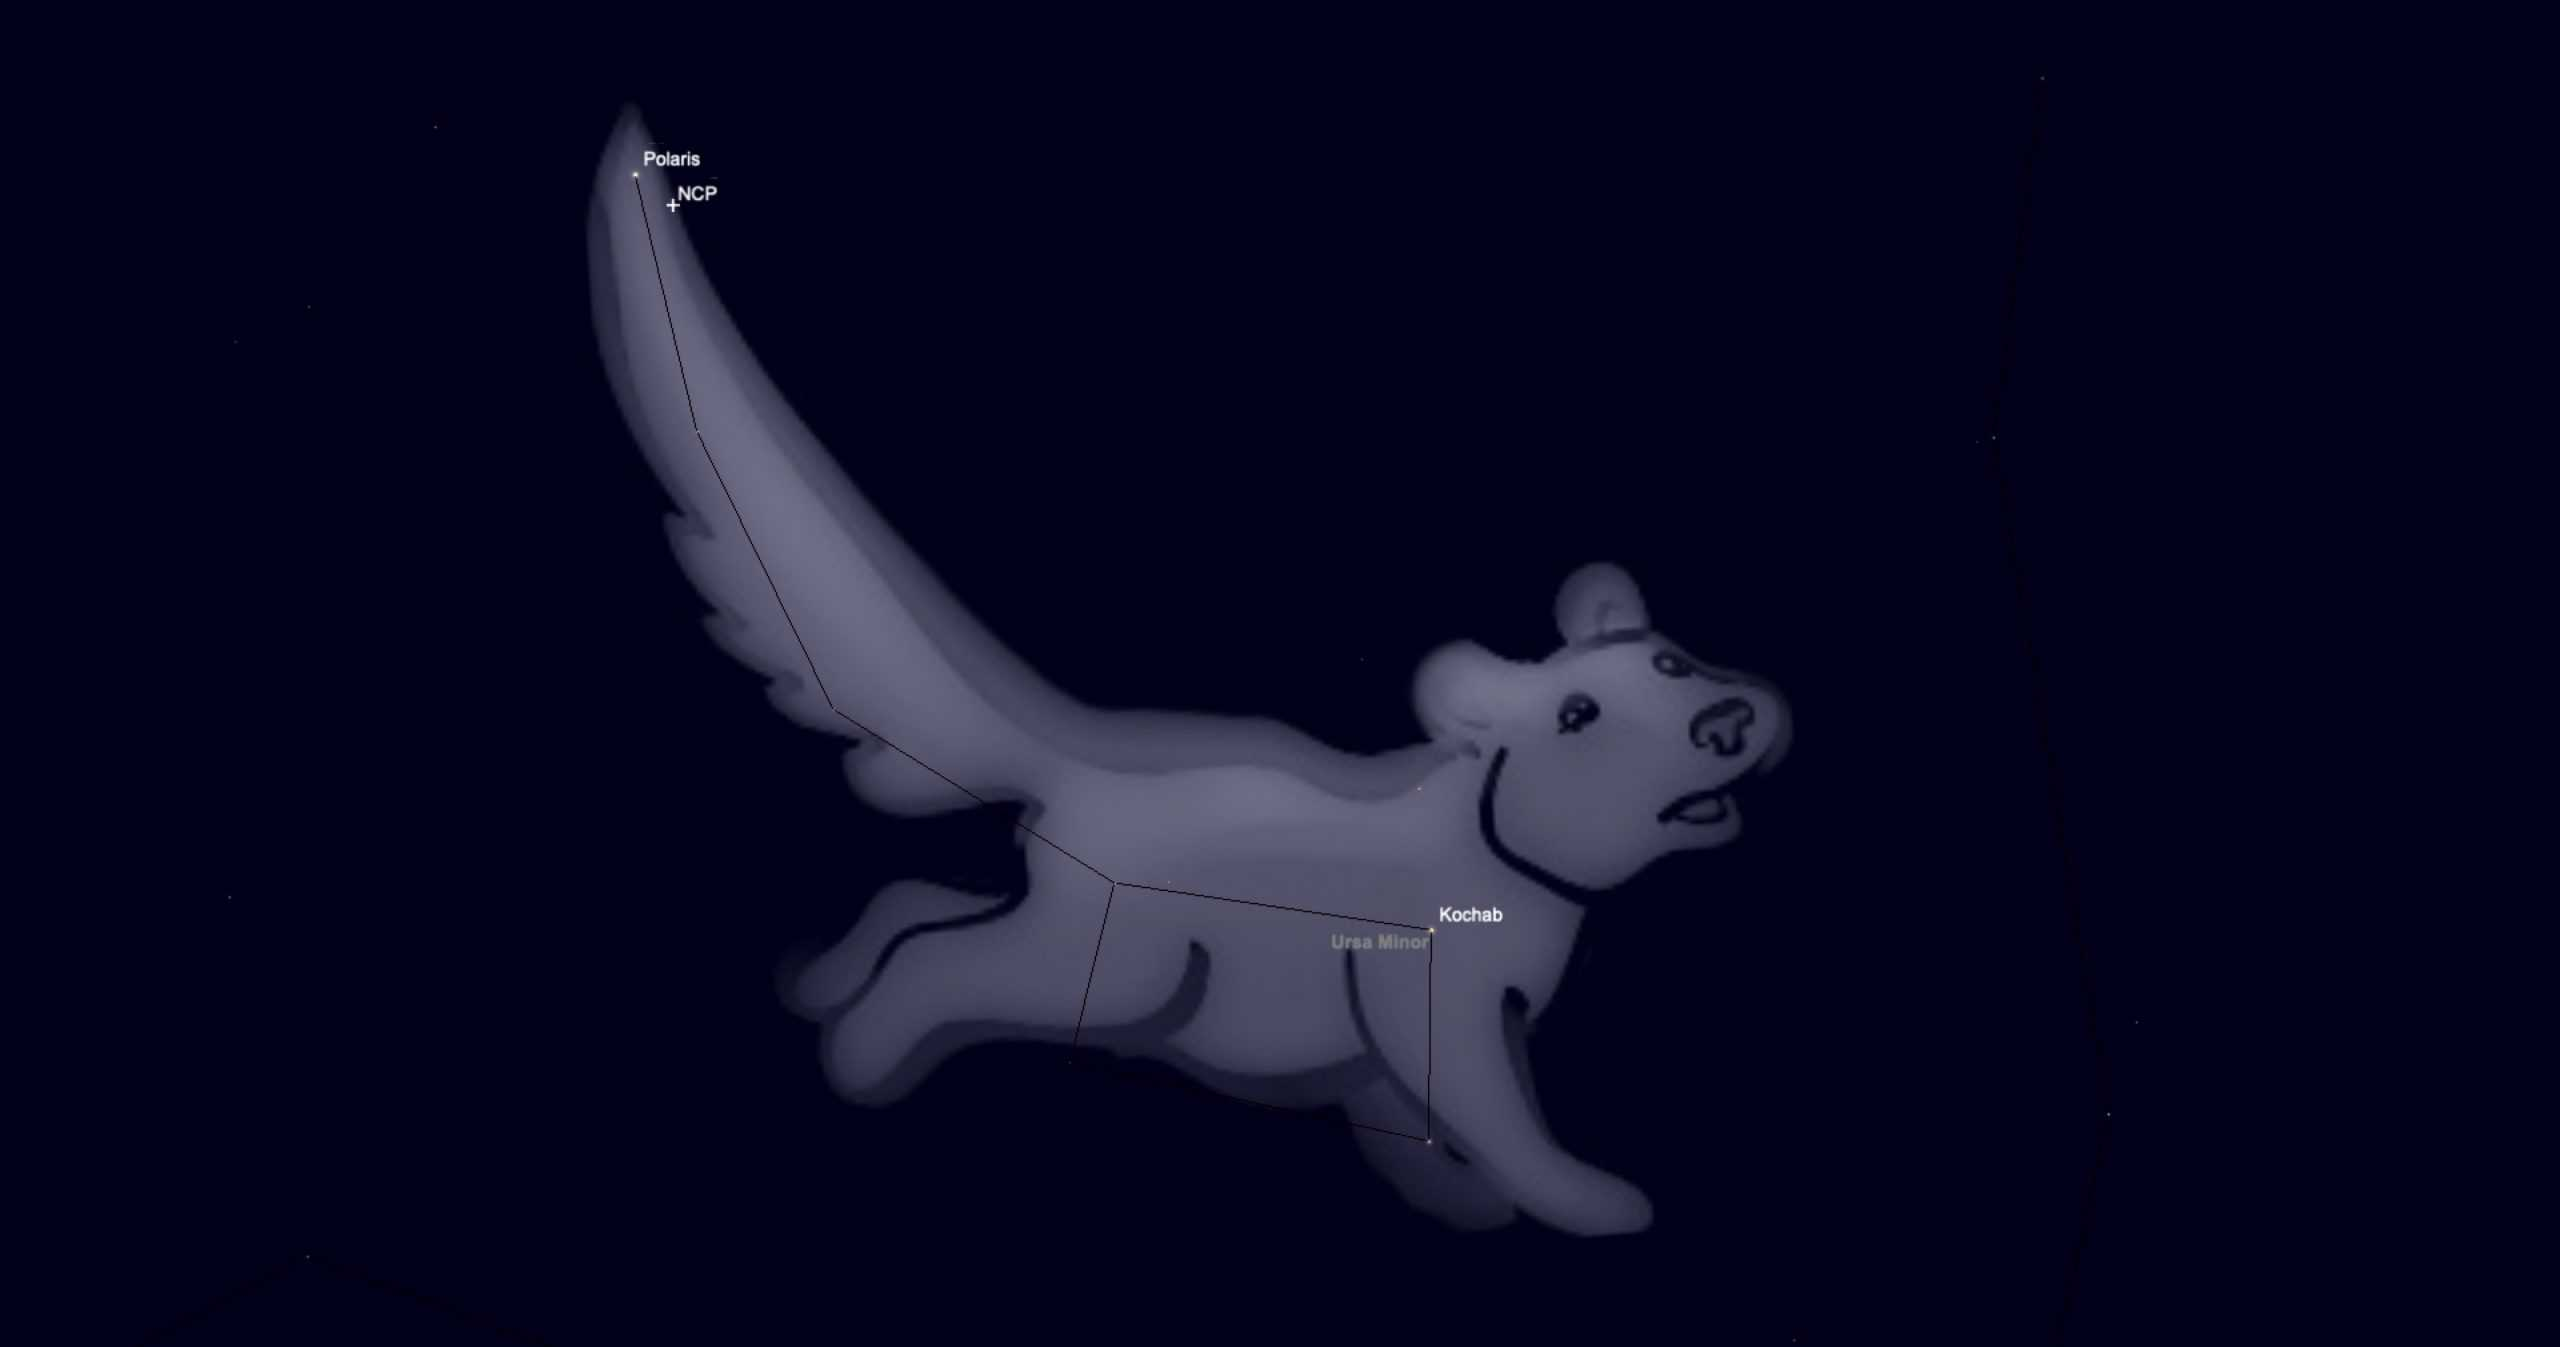 Ursa Minor shown as a little bear